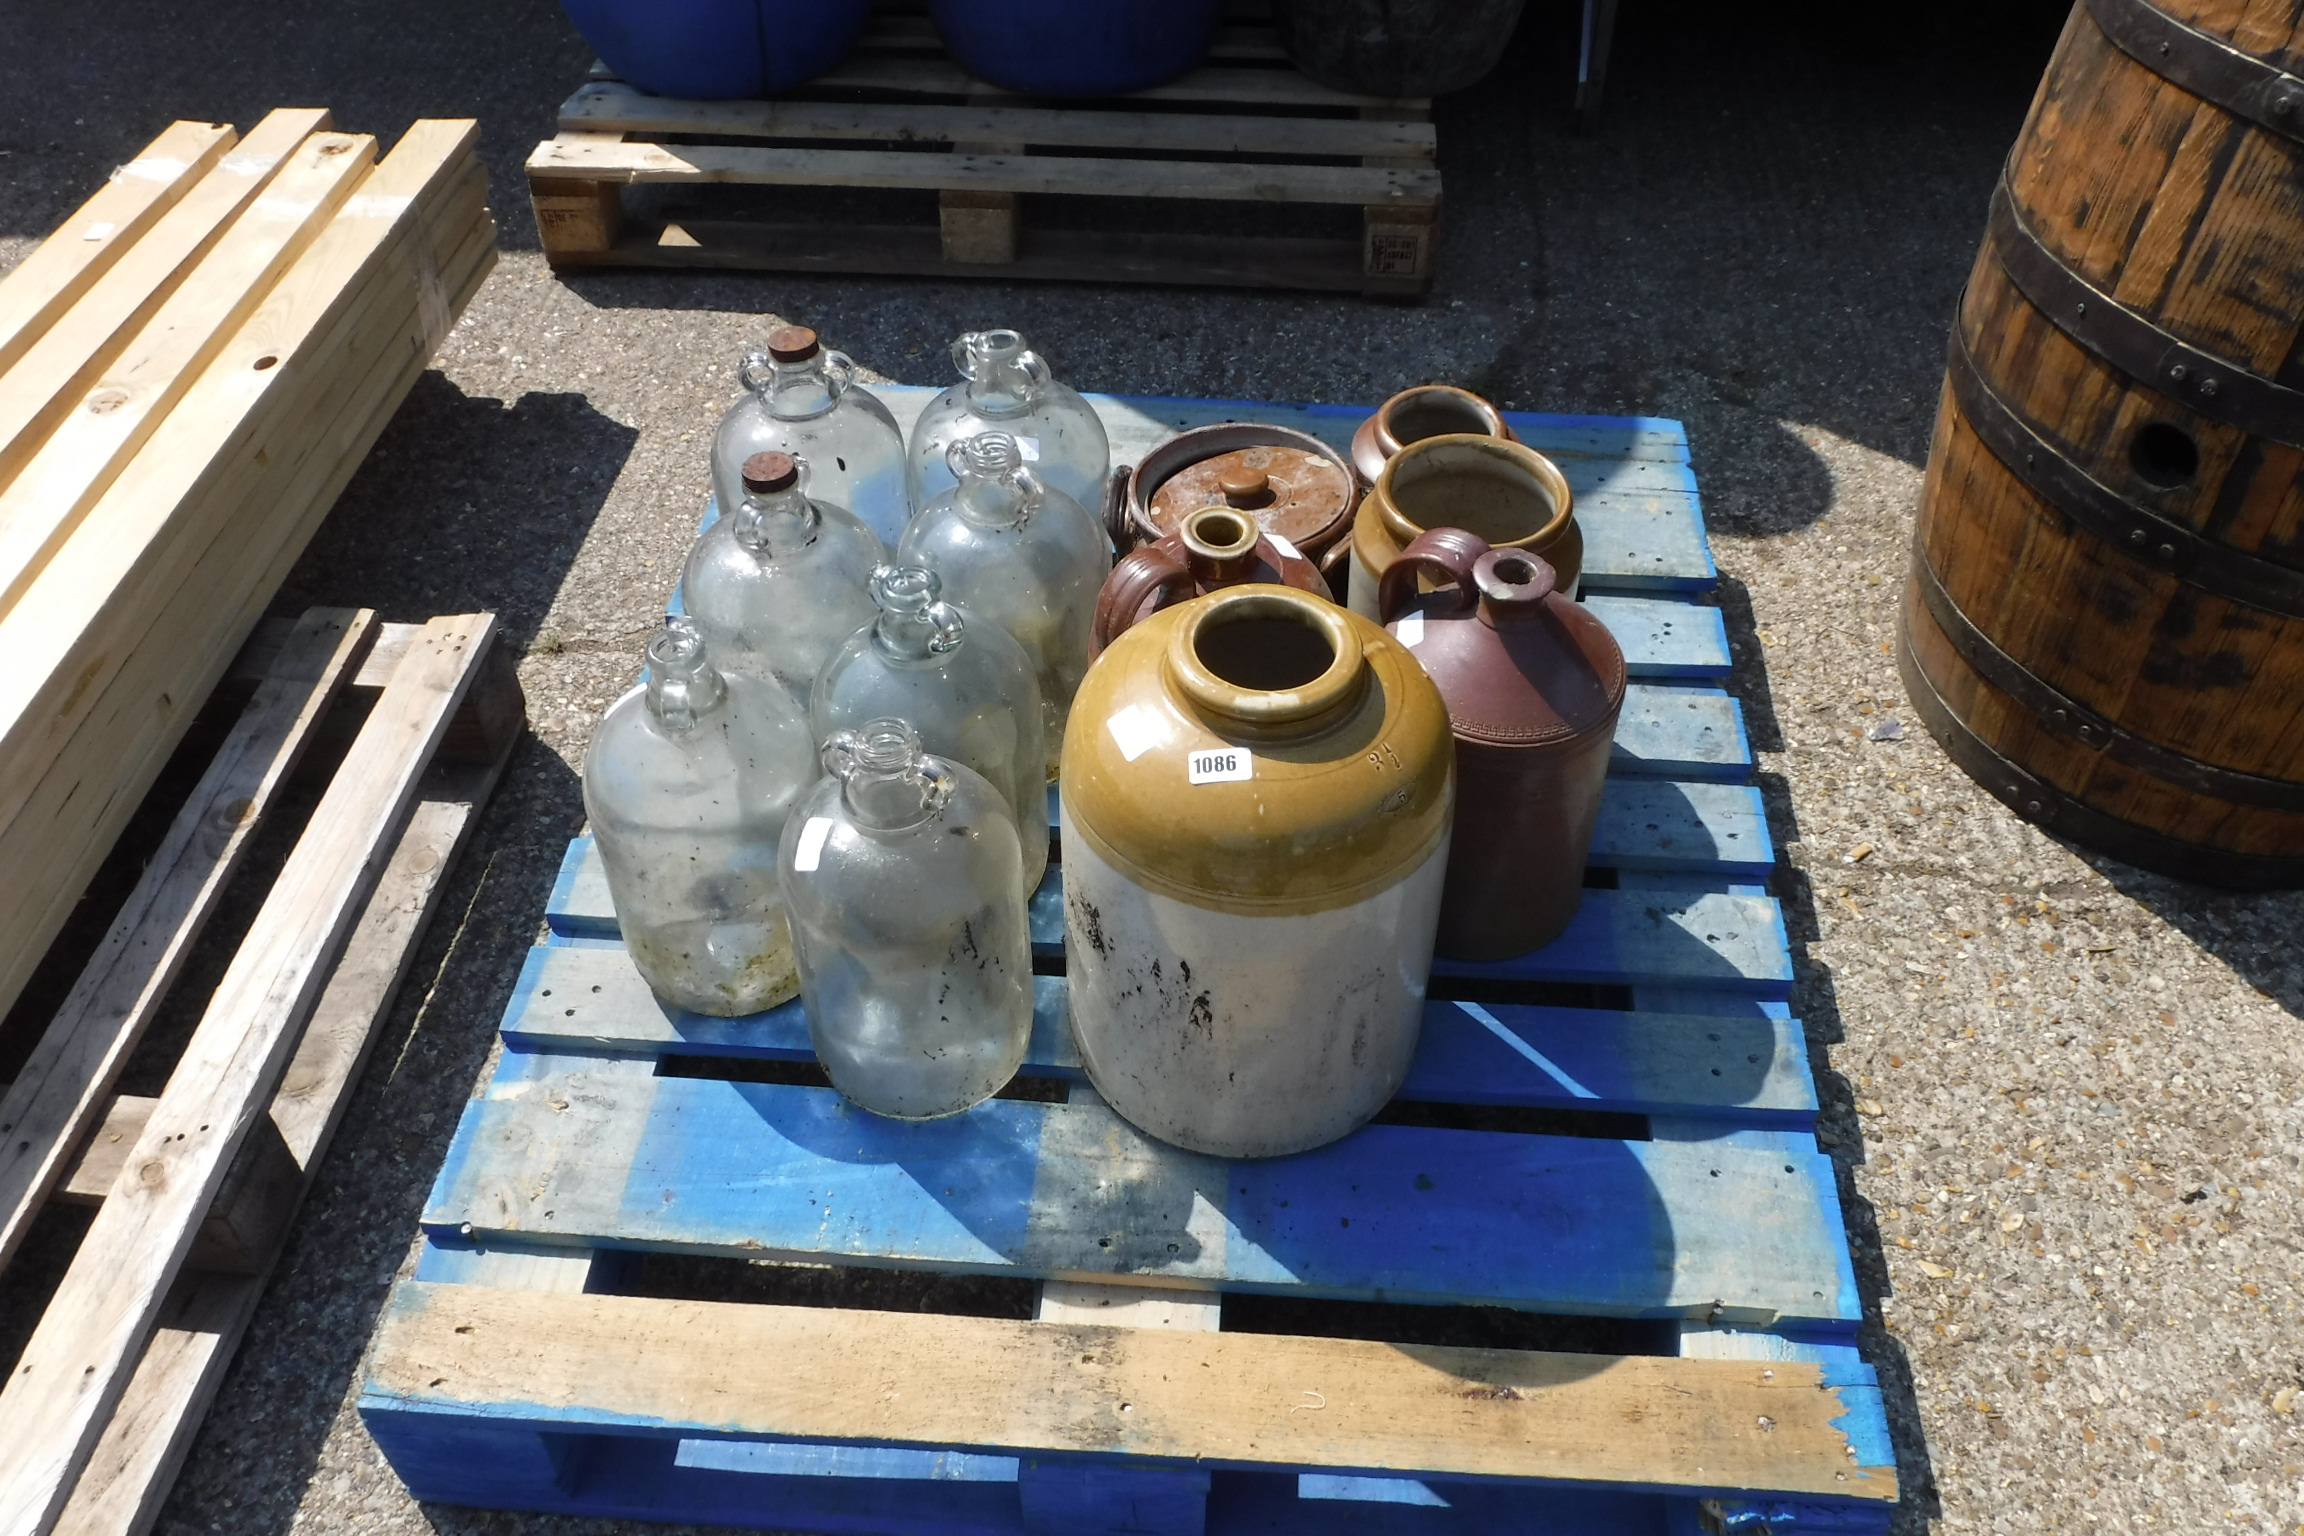 Selection of glass bottles and pottery jars on pallet